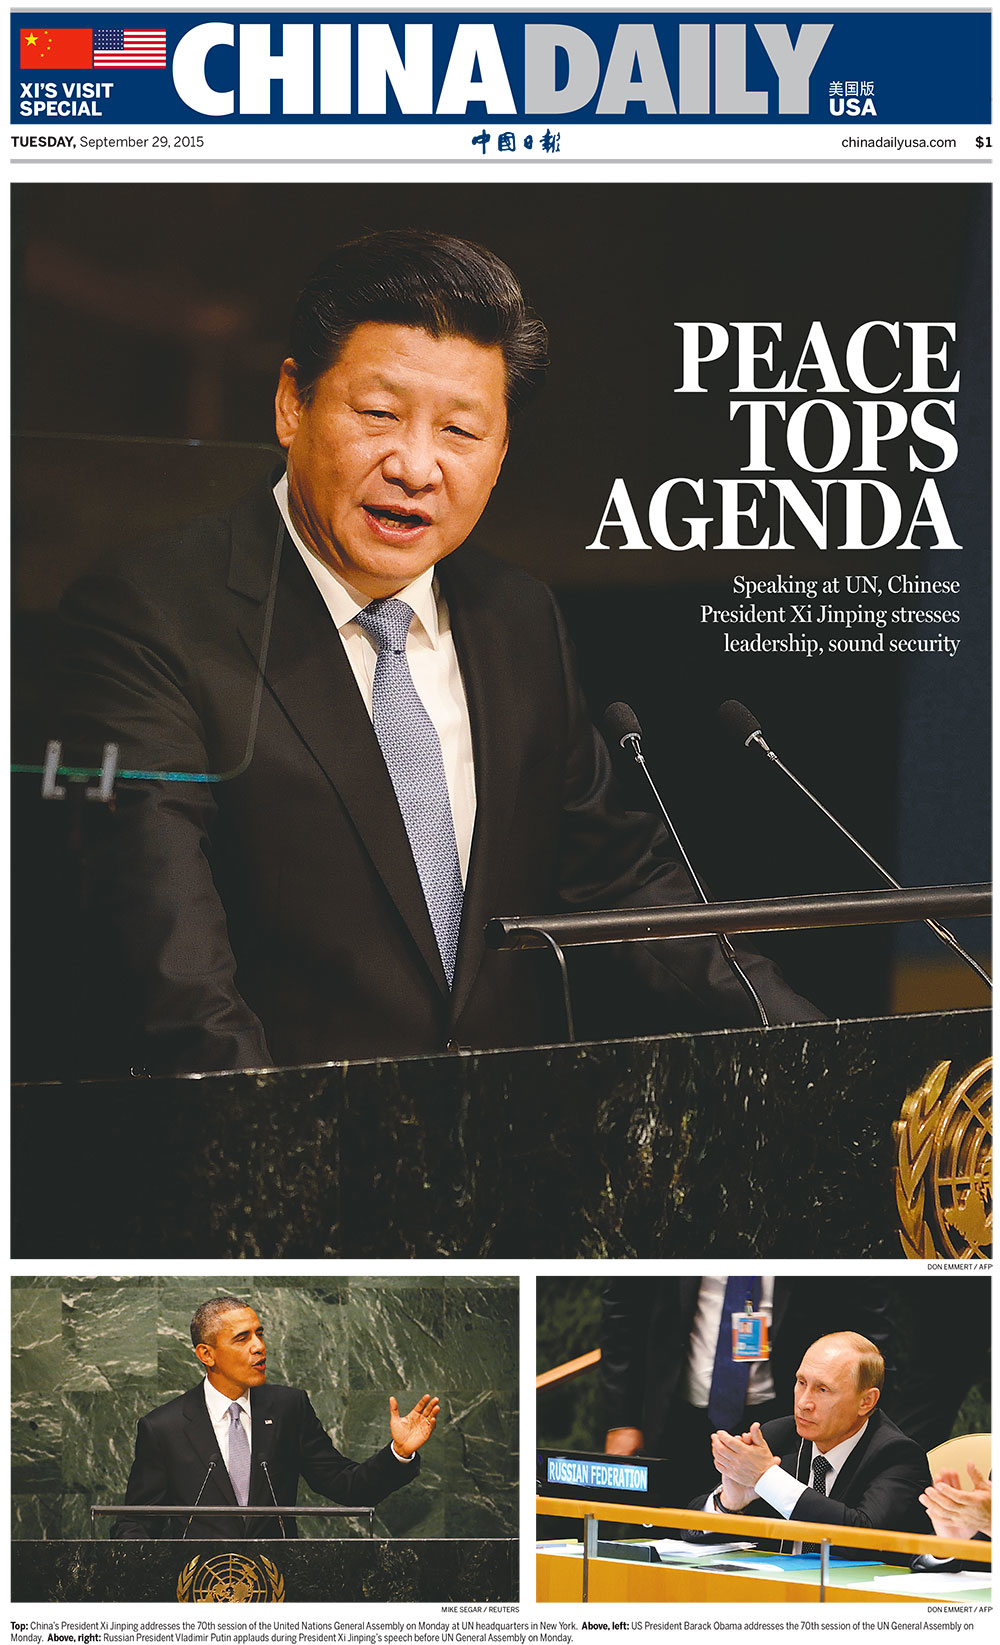 'China Daily,' U.S. edition, September 29, 2015.